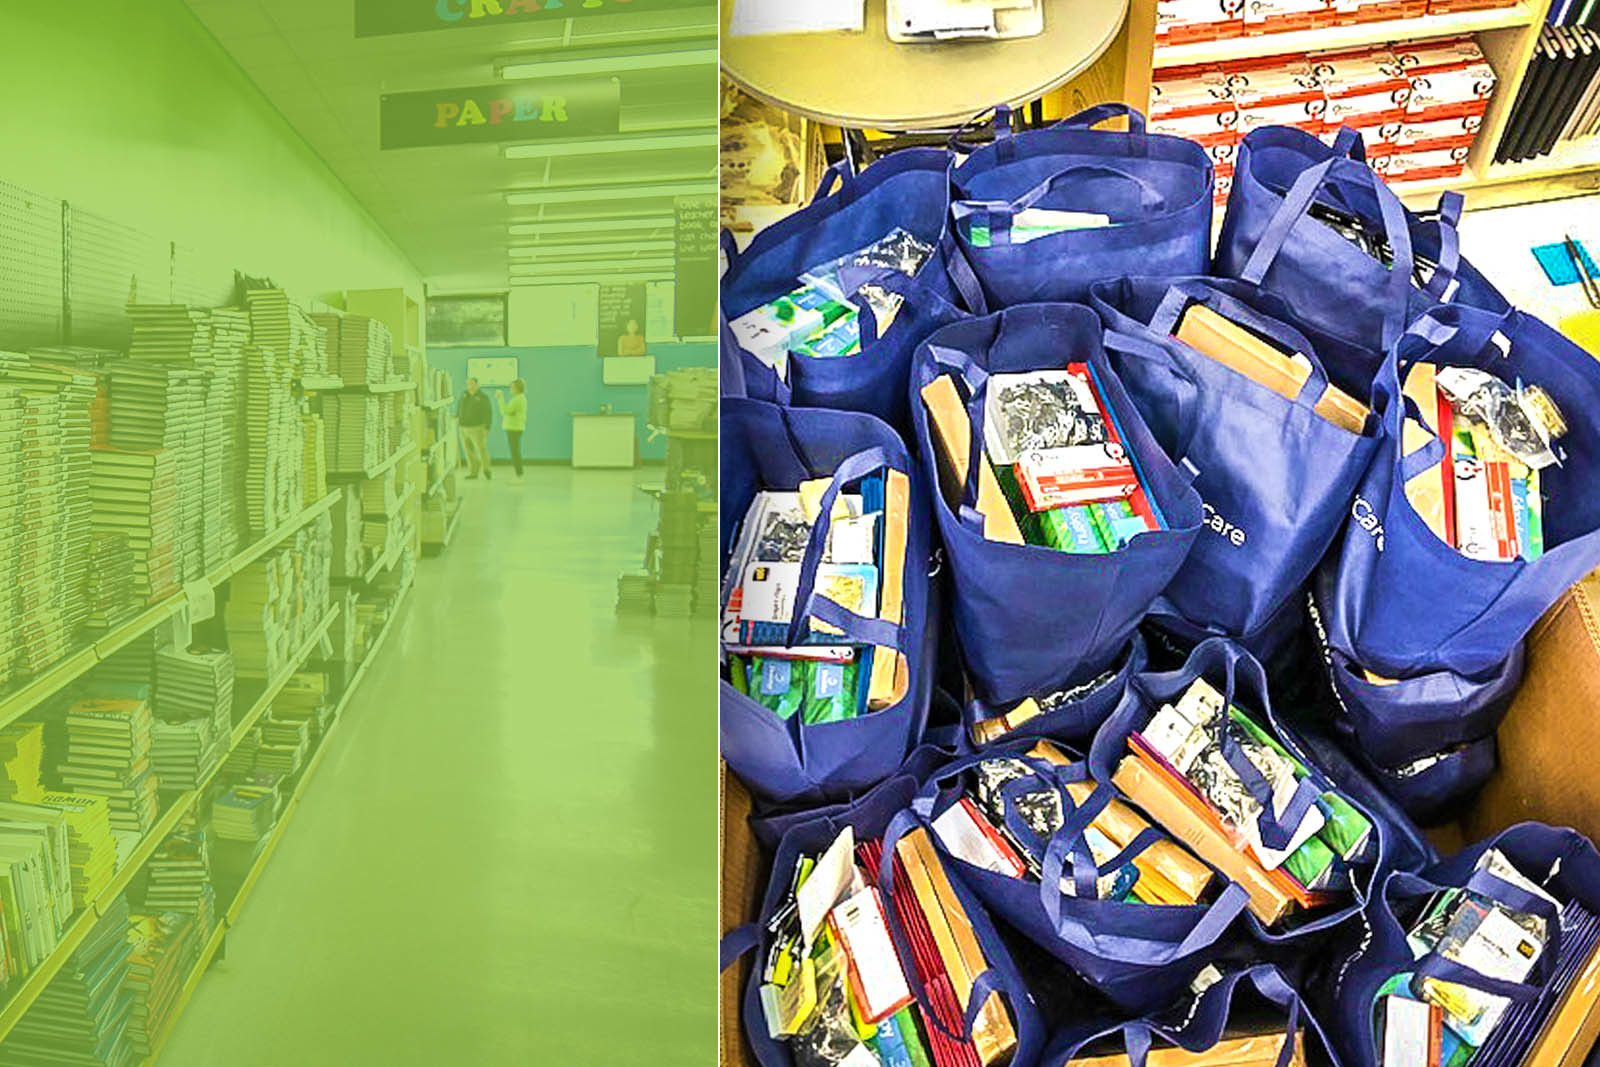 Classroom Central distributed more than one million pounds of free supplies to classrooms last year. They anticipate that need could double this fall due to the pandemic.